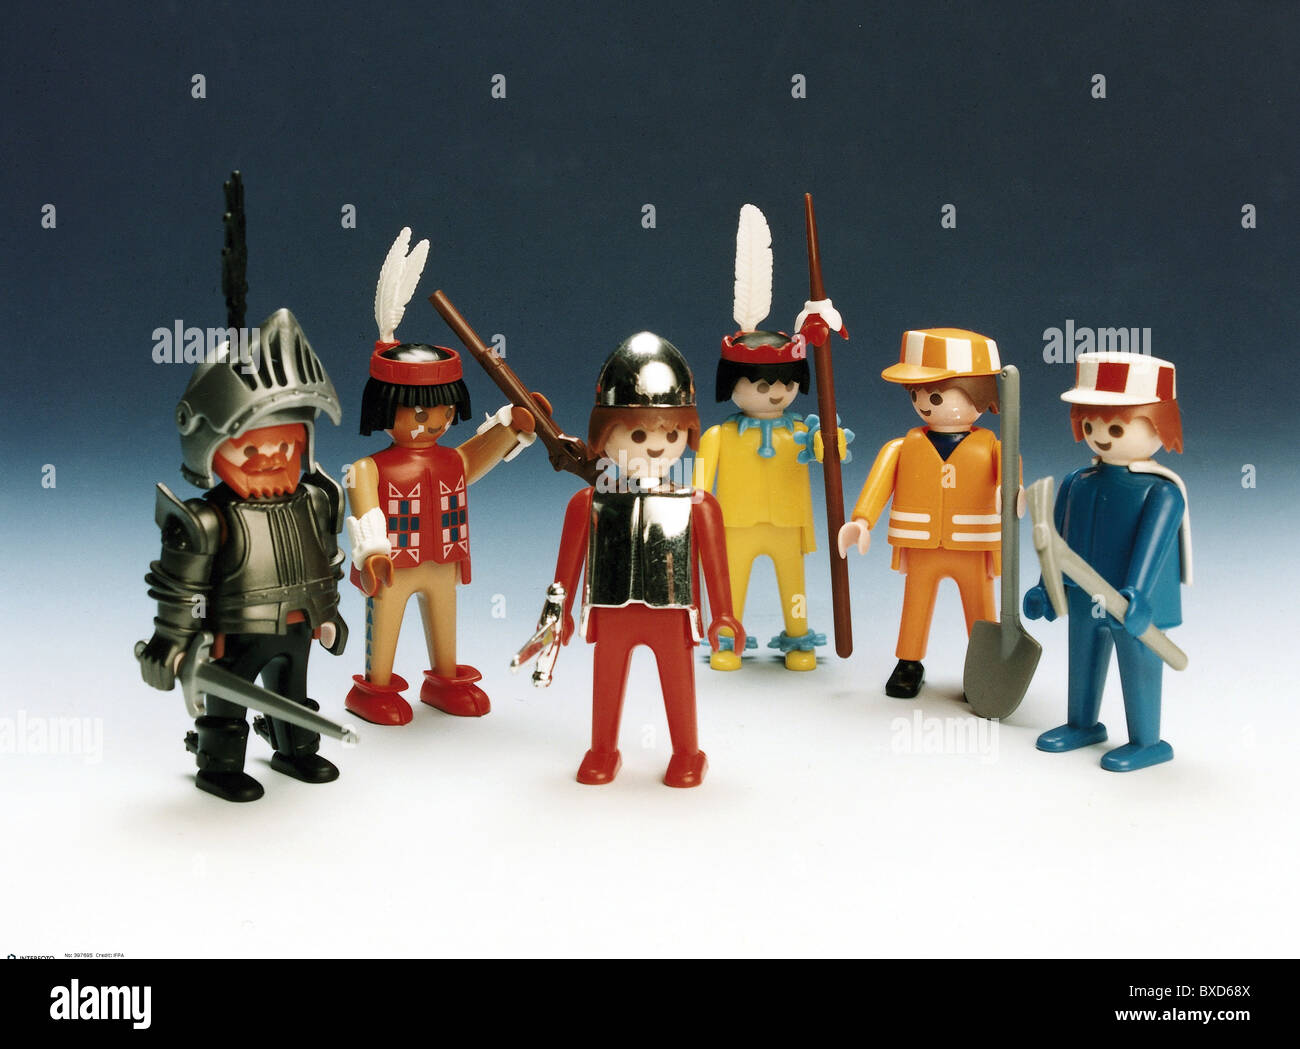 Toys Playmobil Figures Knights Red Indian Construction Worker 1970s 70s 20th Century Historic Historical Nuremberg T